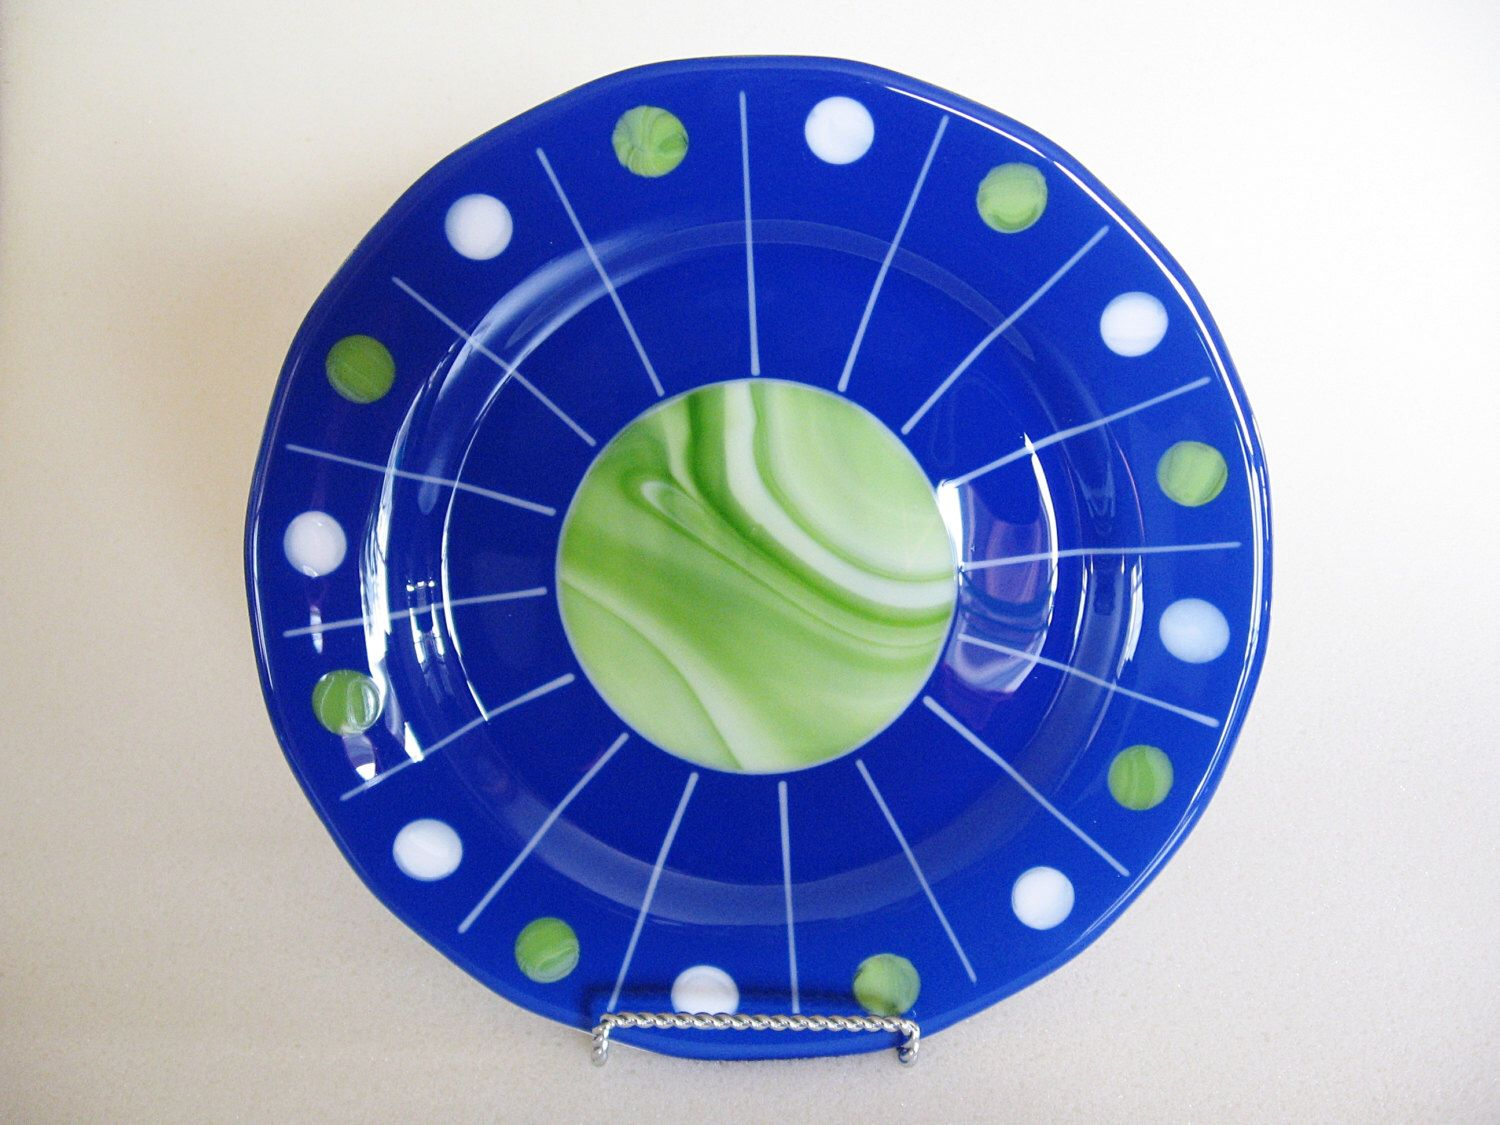 """Fused Glass Plate - 11"""" Diameter - Decorative Plate - Decorative Dish - Round Plate - Wall Art - Blue - Green - Celestial - Planet by StainedGlassYourWay on Etsy https://www.etsy.com/listing/184964598/fused-glass-plate-11-diameter-decorative"""